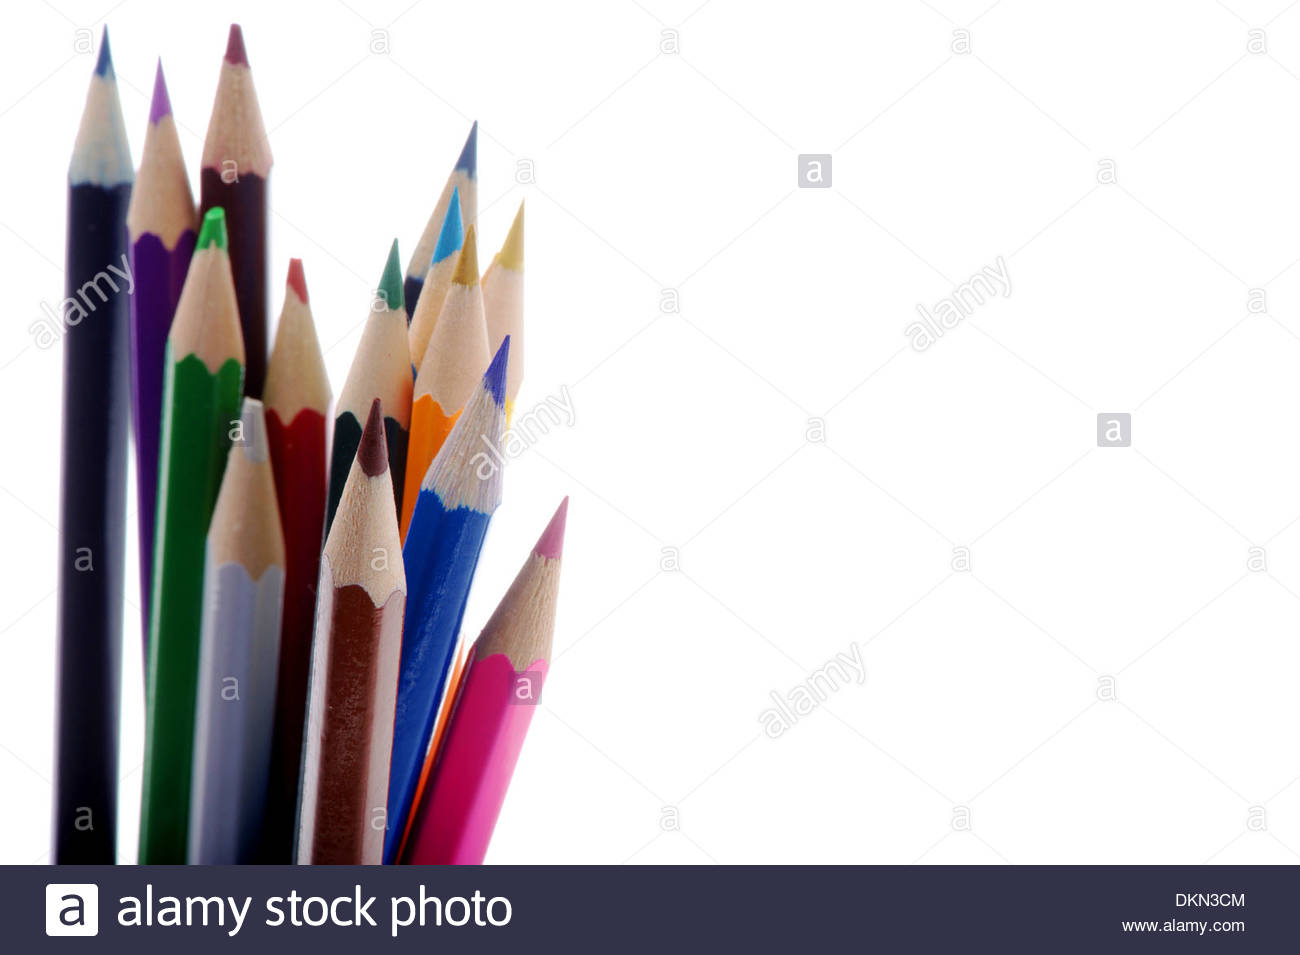 pen write draw colors color charcoal wood office art artistic drawing colorful paper sharp variety spectrum rainbow red blue - Stock Image